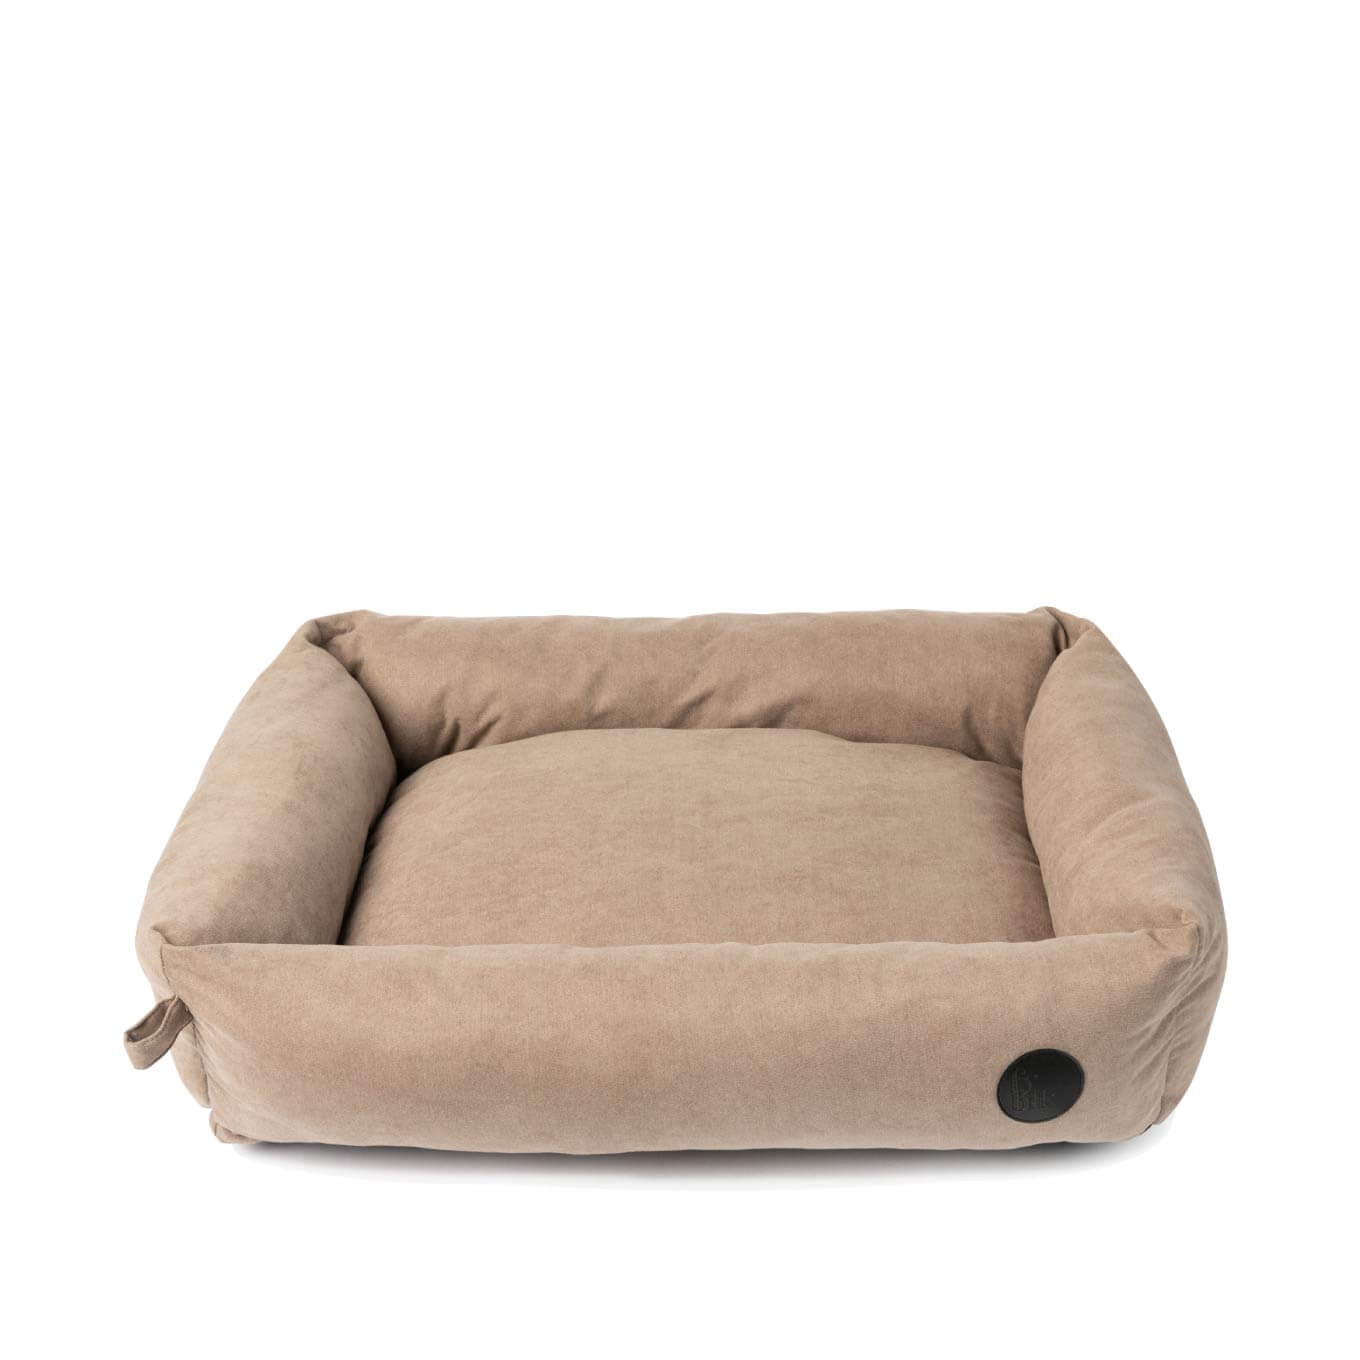 FuzzYard The Lounge Bed in Mocha